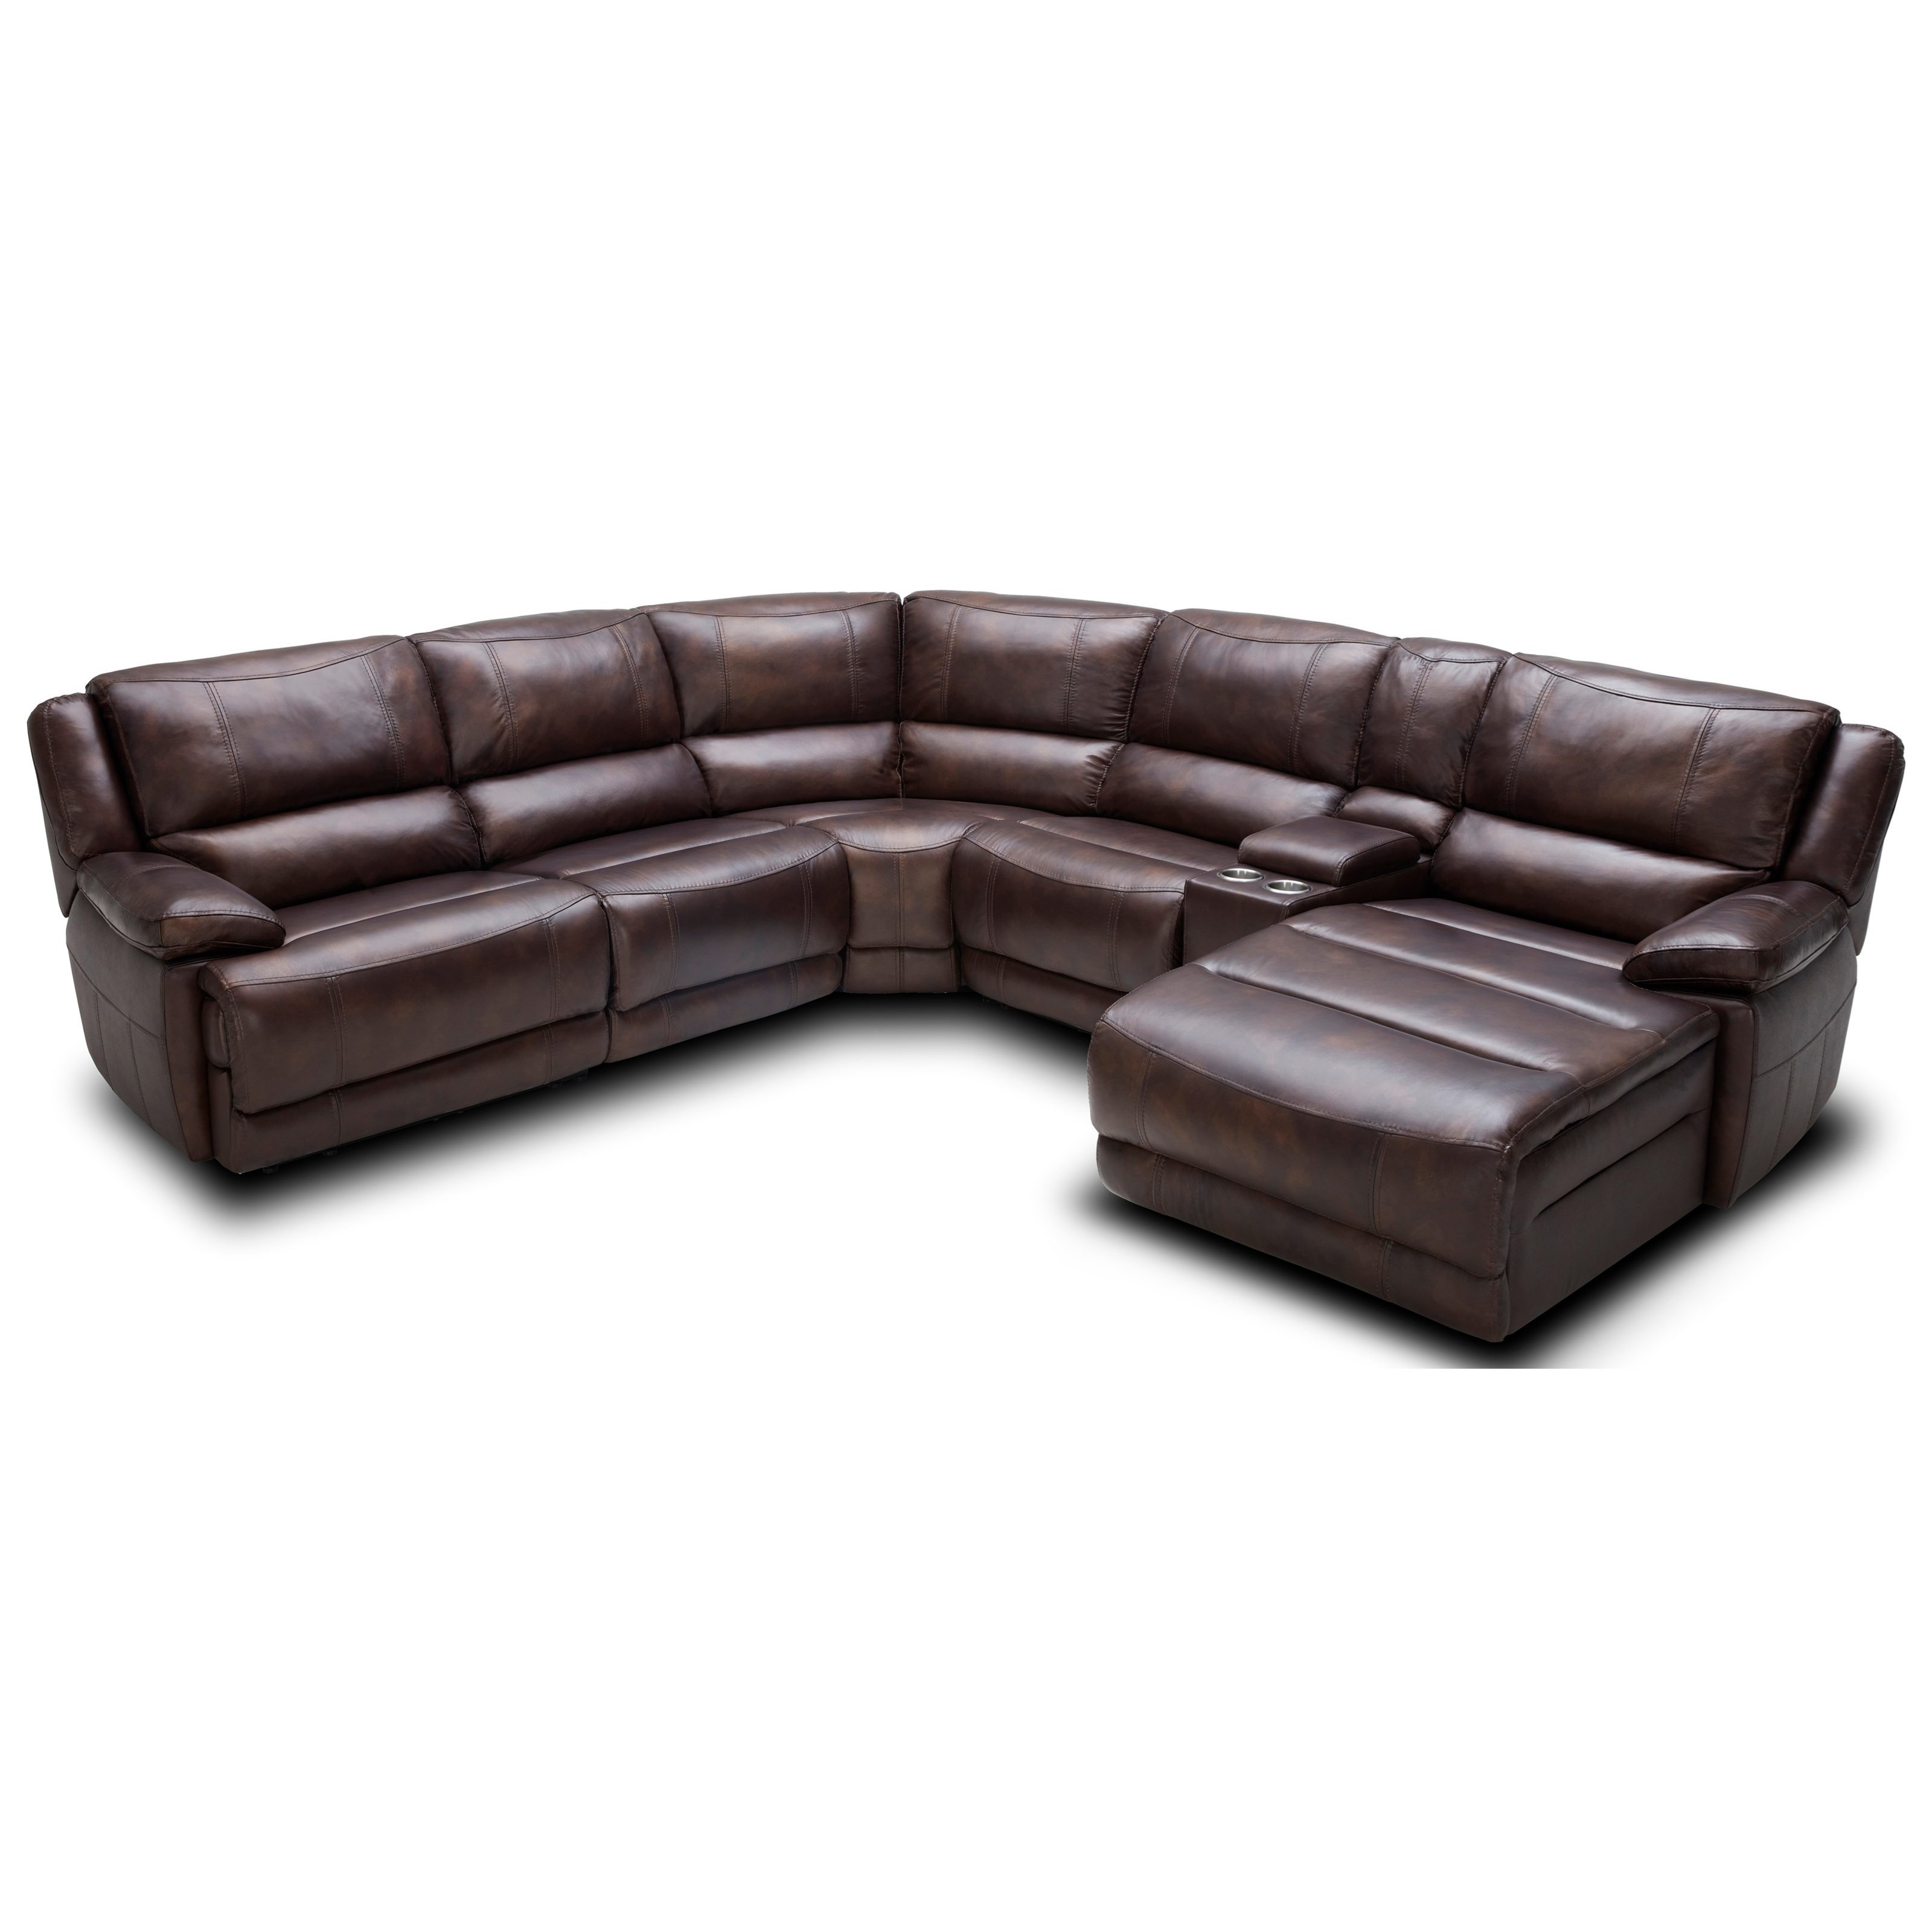 Kuka Home KM028 Six Piece Reclining Sectional Sofa with Cupholder Storage Console - Becku0027s Furniture - Reclining Sectional Sofas  sc 1 st  Becku0027s Furniture & Kuka Home KM028 Six Piece Reclining Sectional Sofa with Cupholder ... islam-shia.org